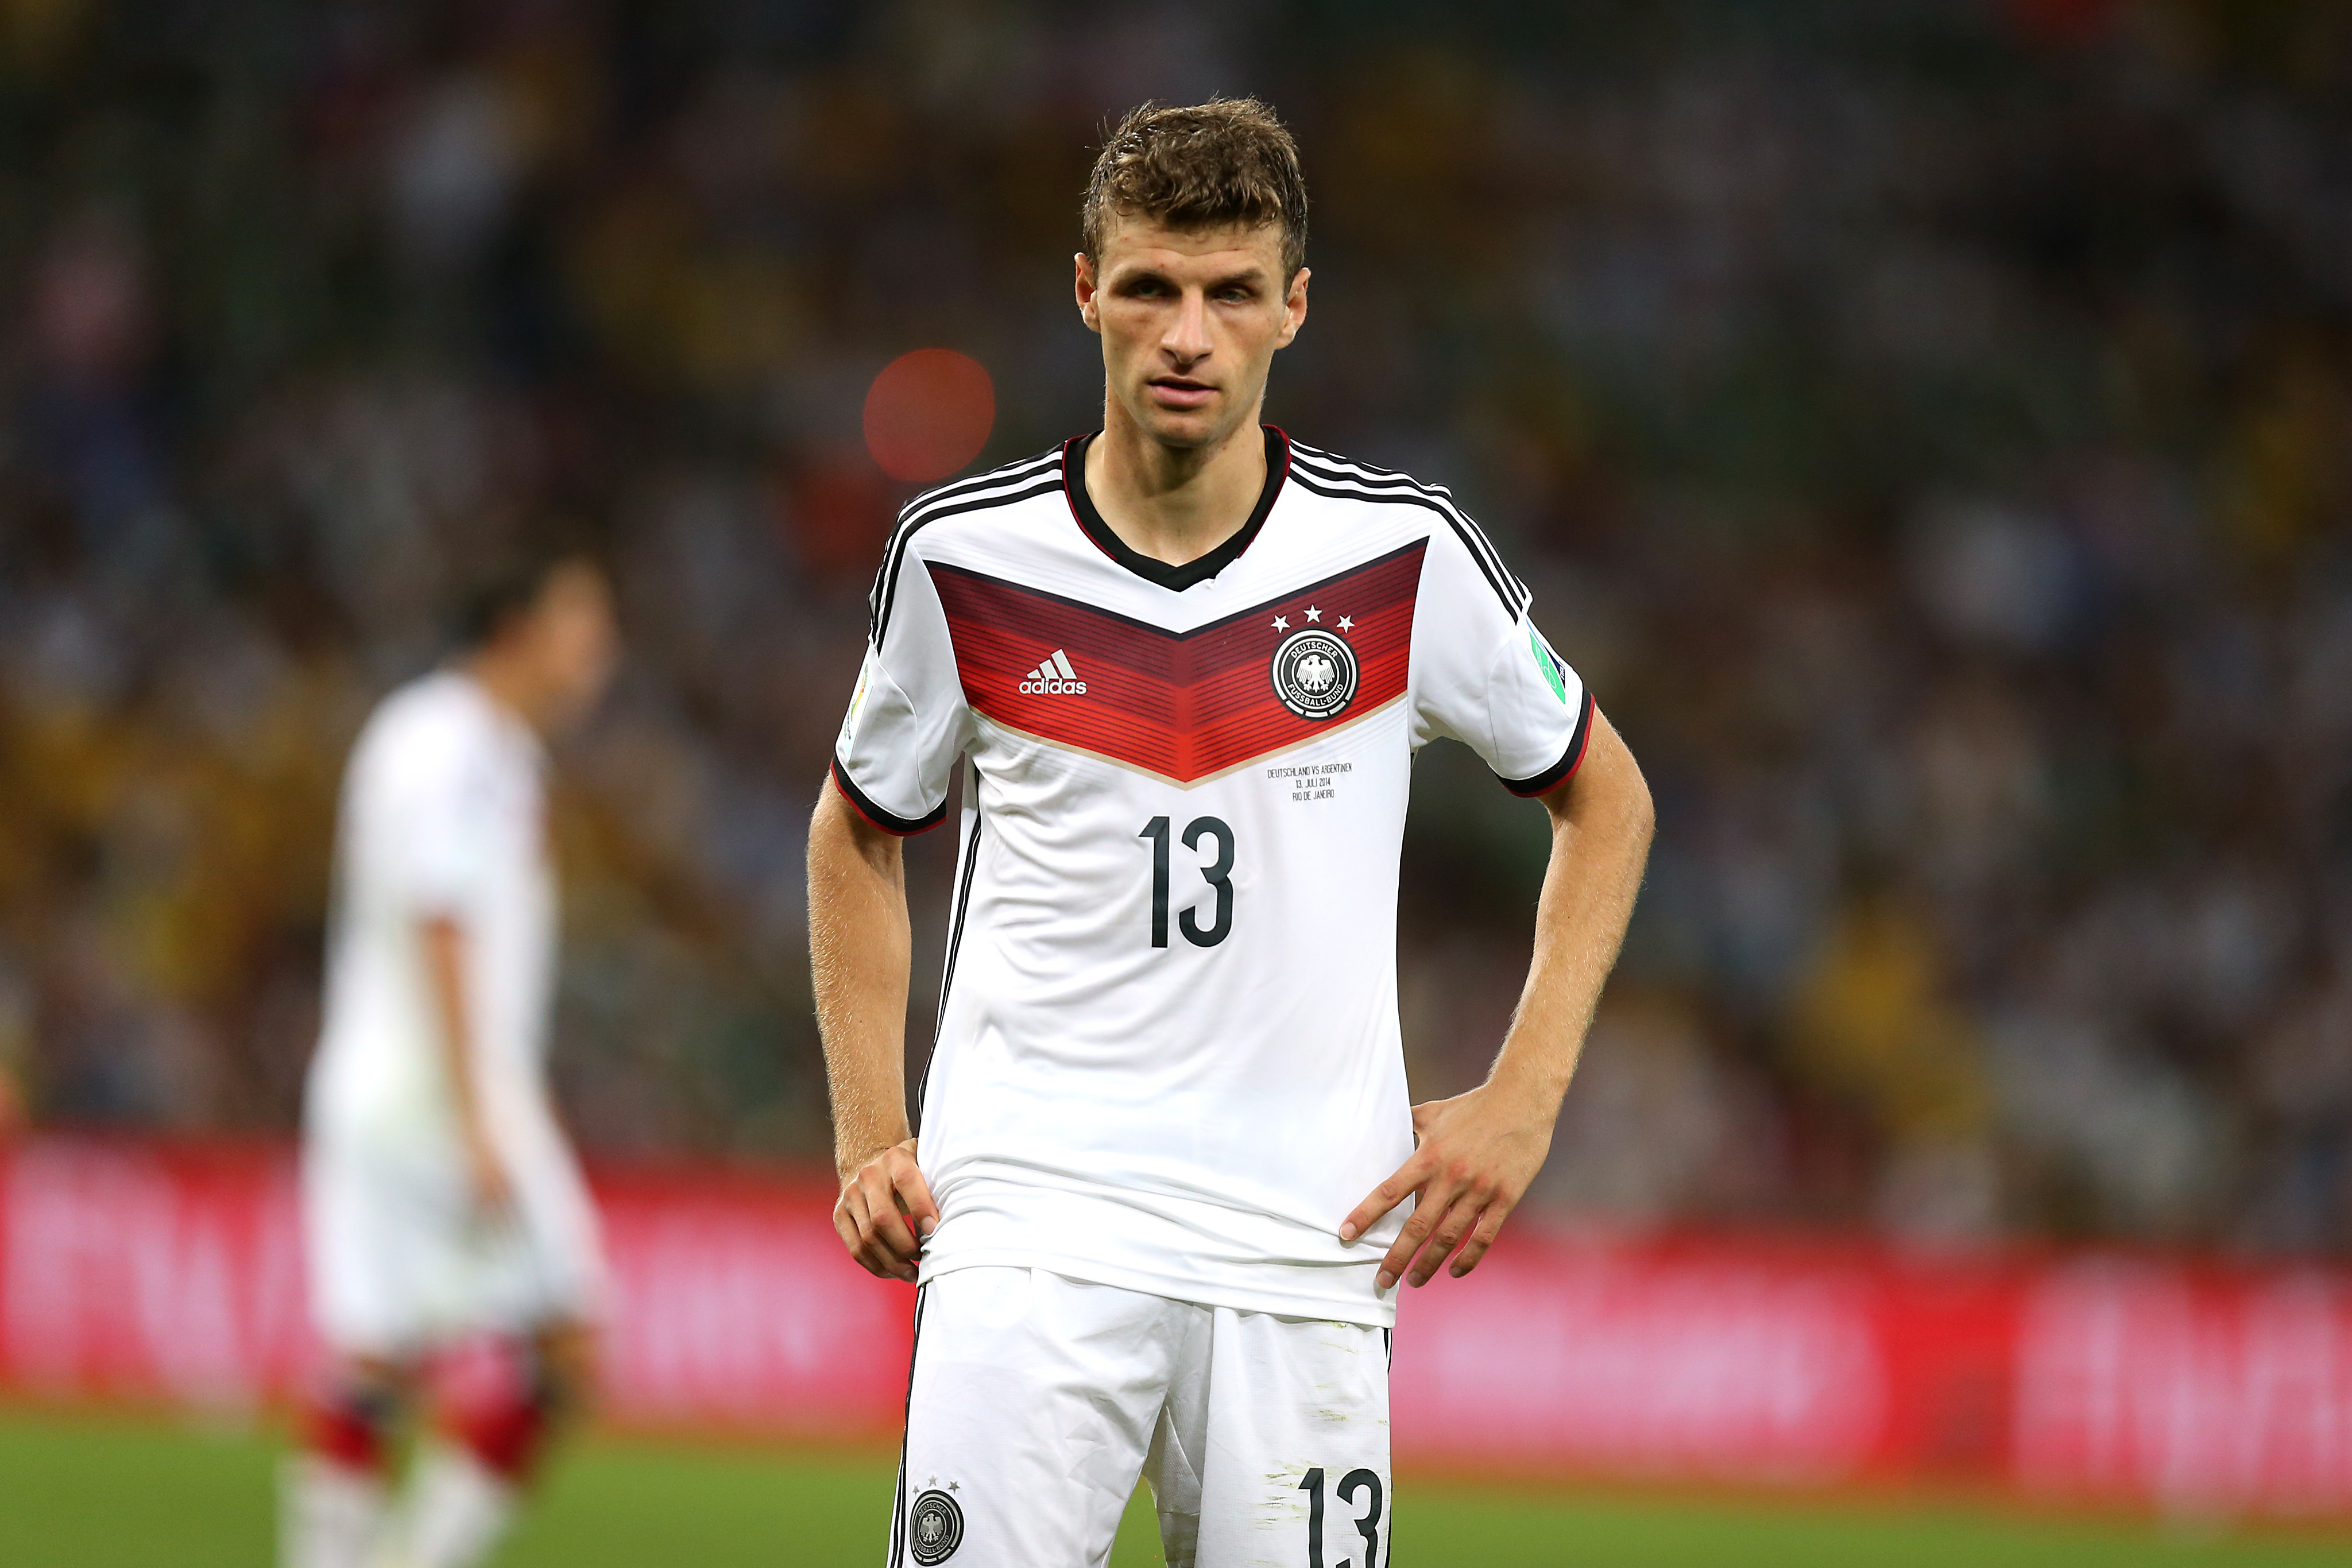 Thomas Muller made little impact for Germany this time round